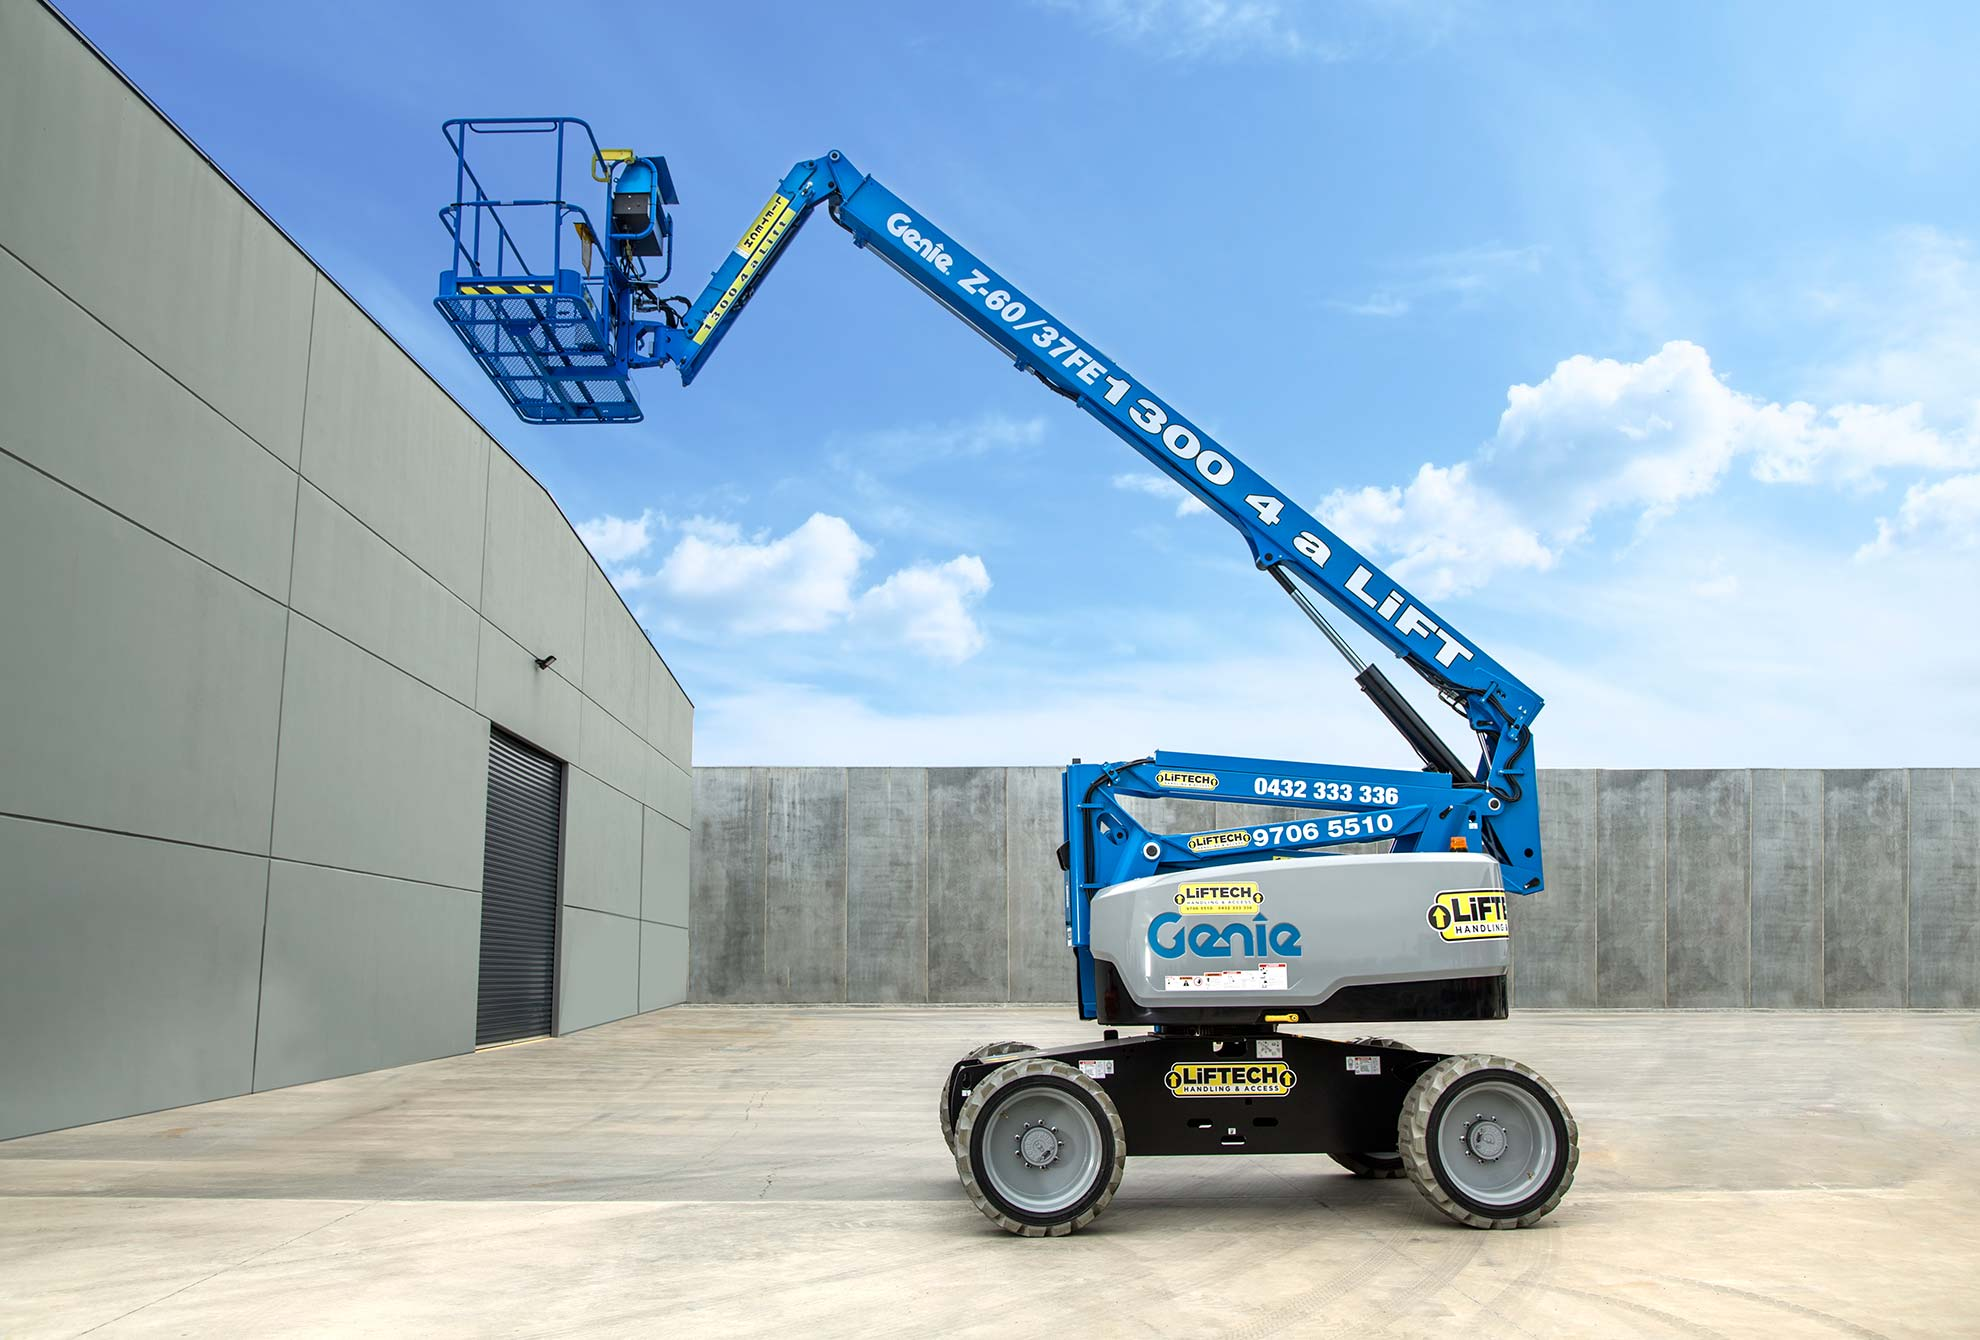 8 metre electric hybrid knuckle boom rental